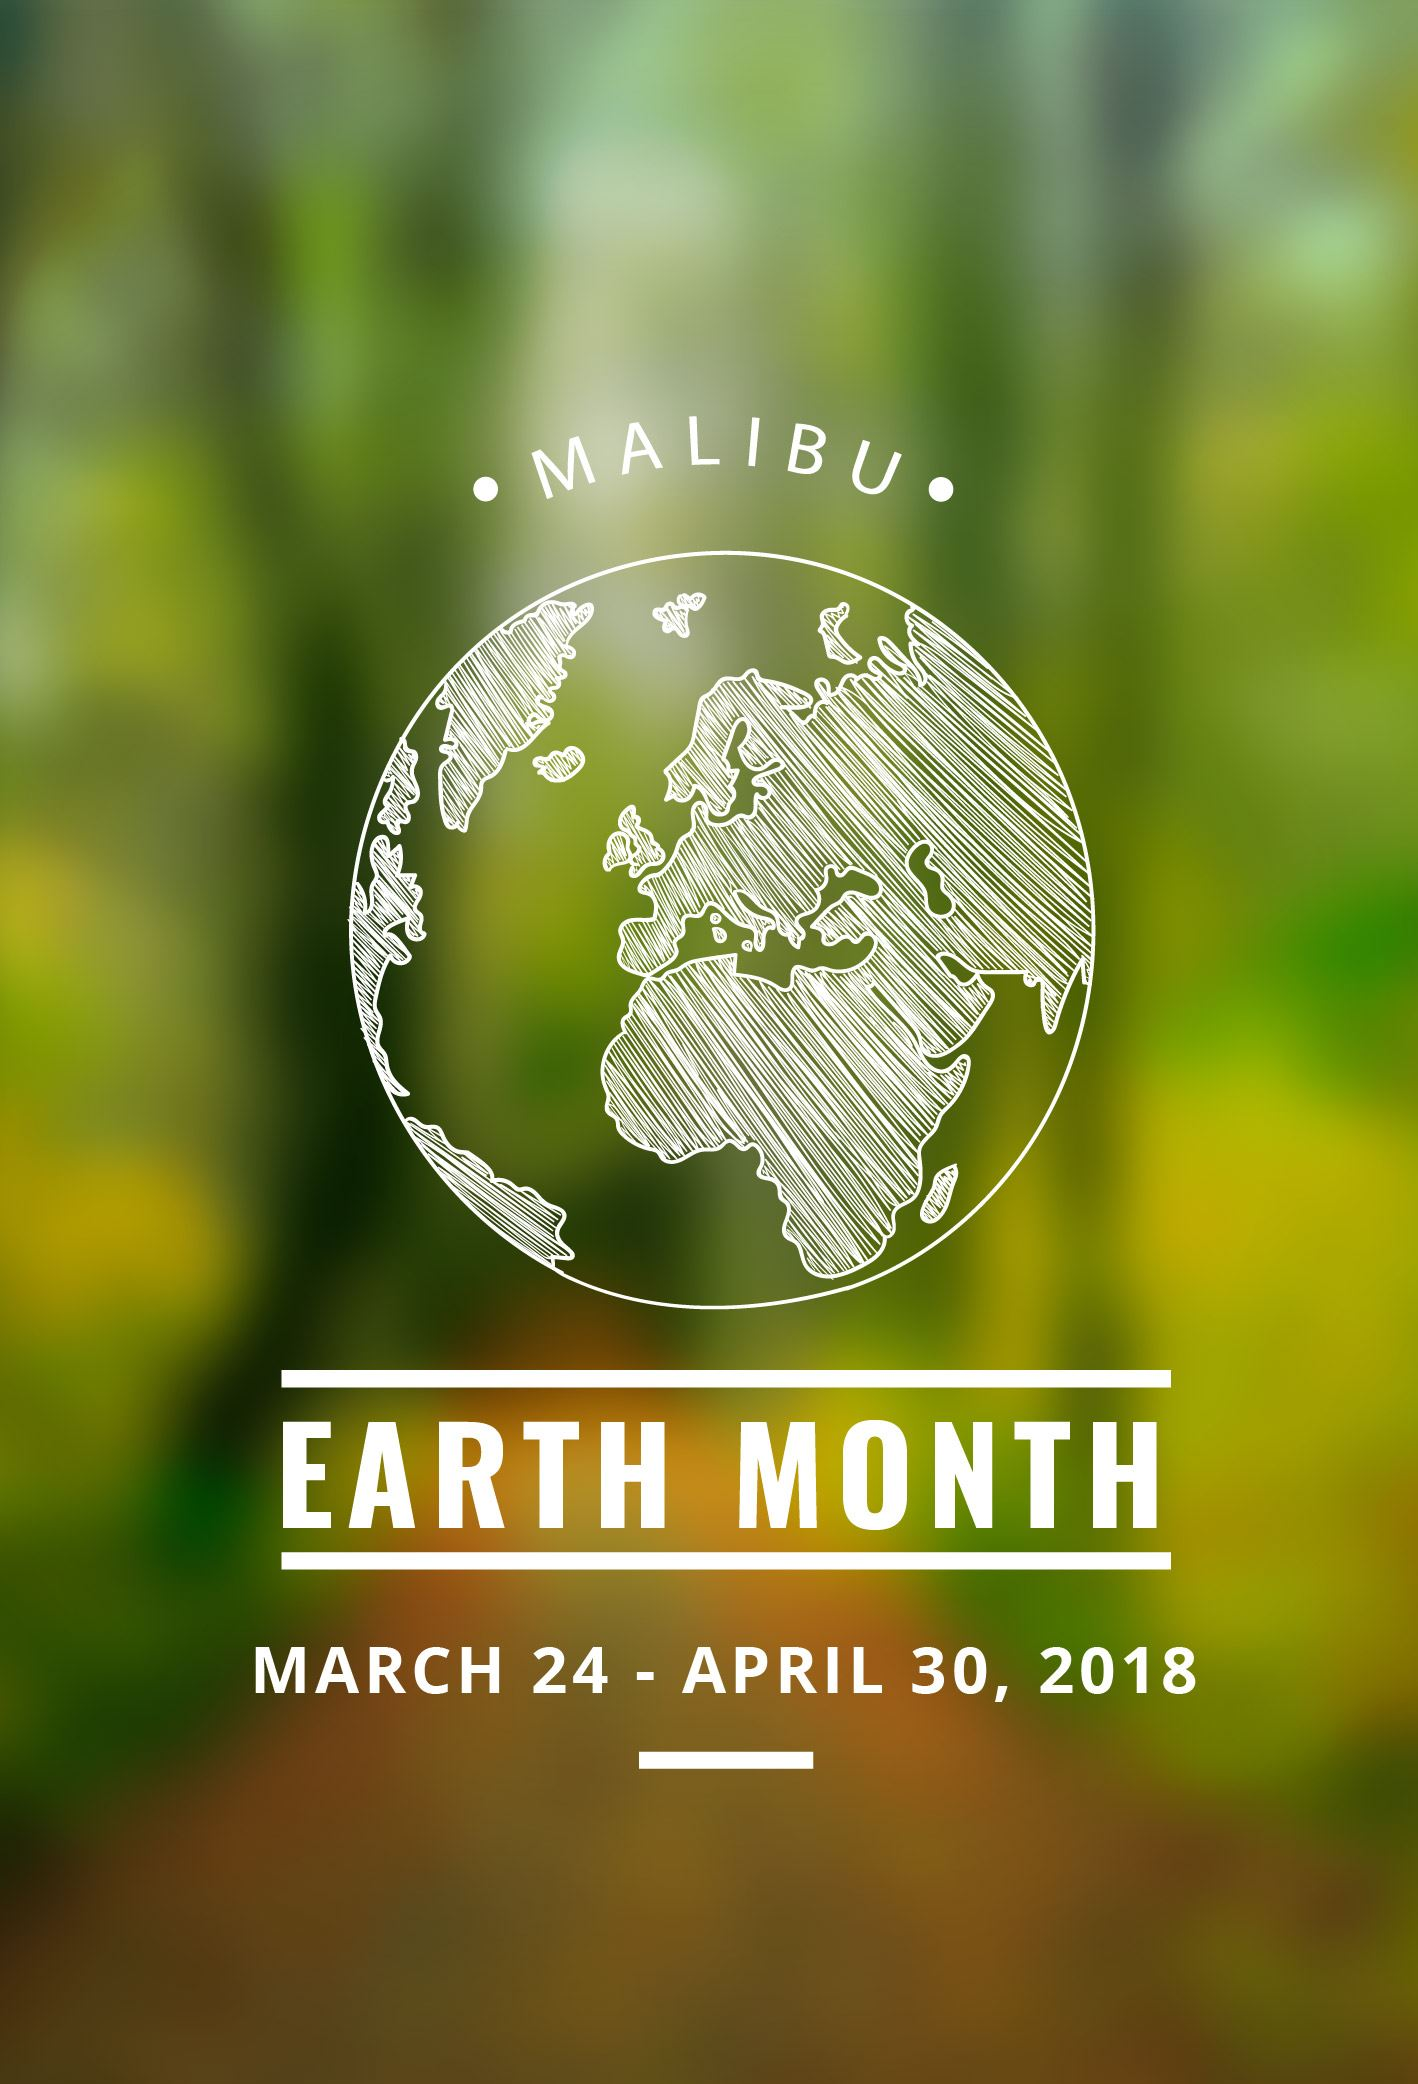 Malibu Earth Month 2018